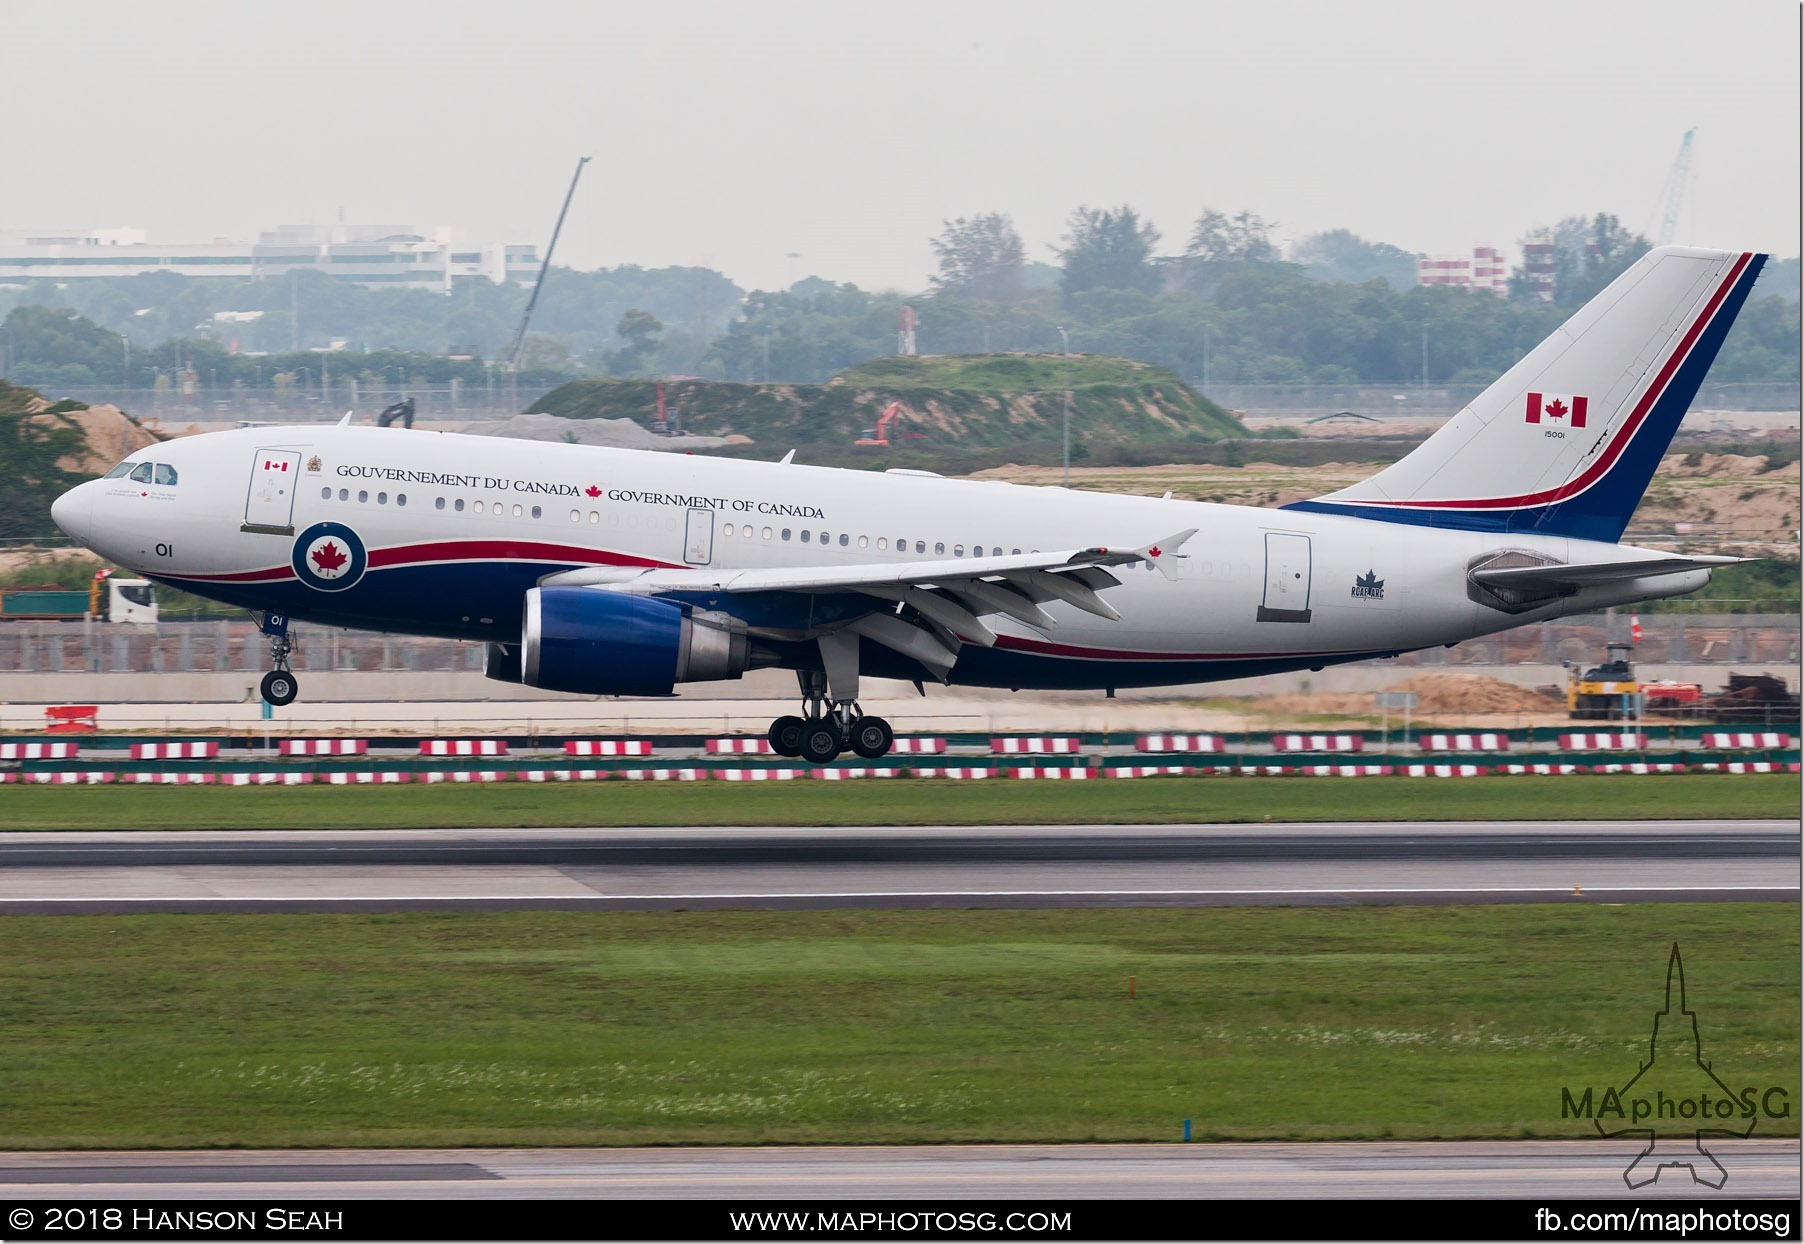 11. Government of Canada Airbus A310